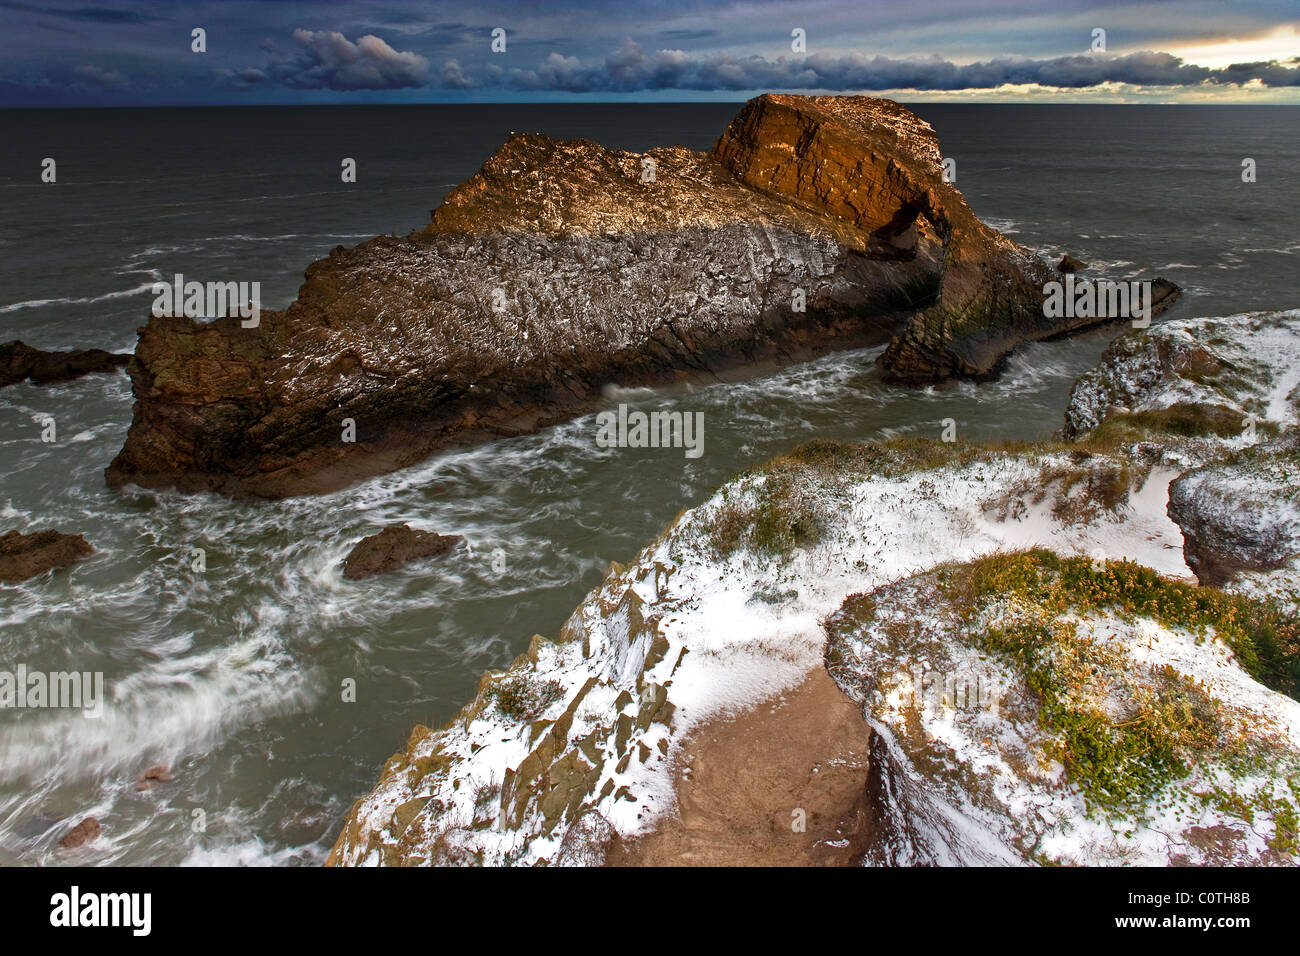 A view of The Bow Fiddle rock in winter near Portknockie, Moray, Scotland - Stock Image